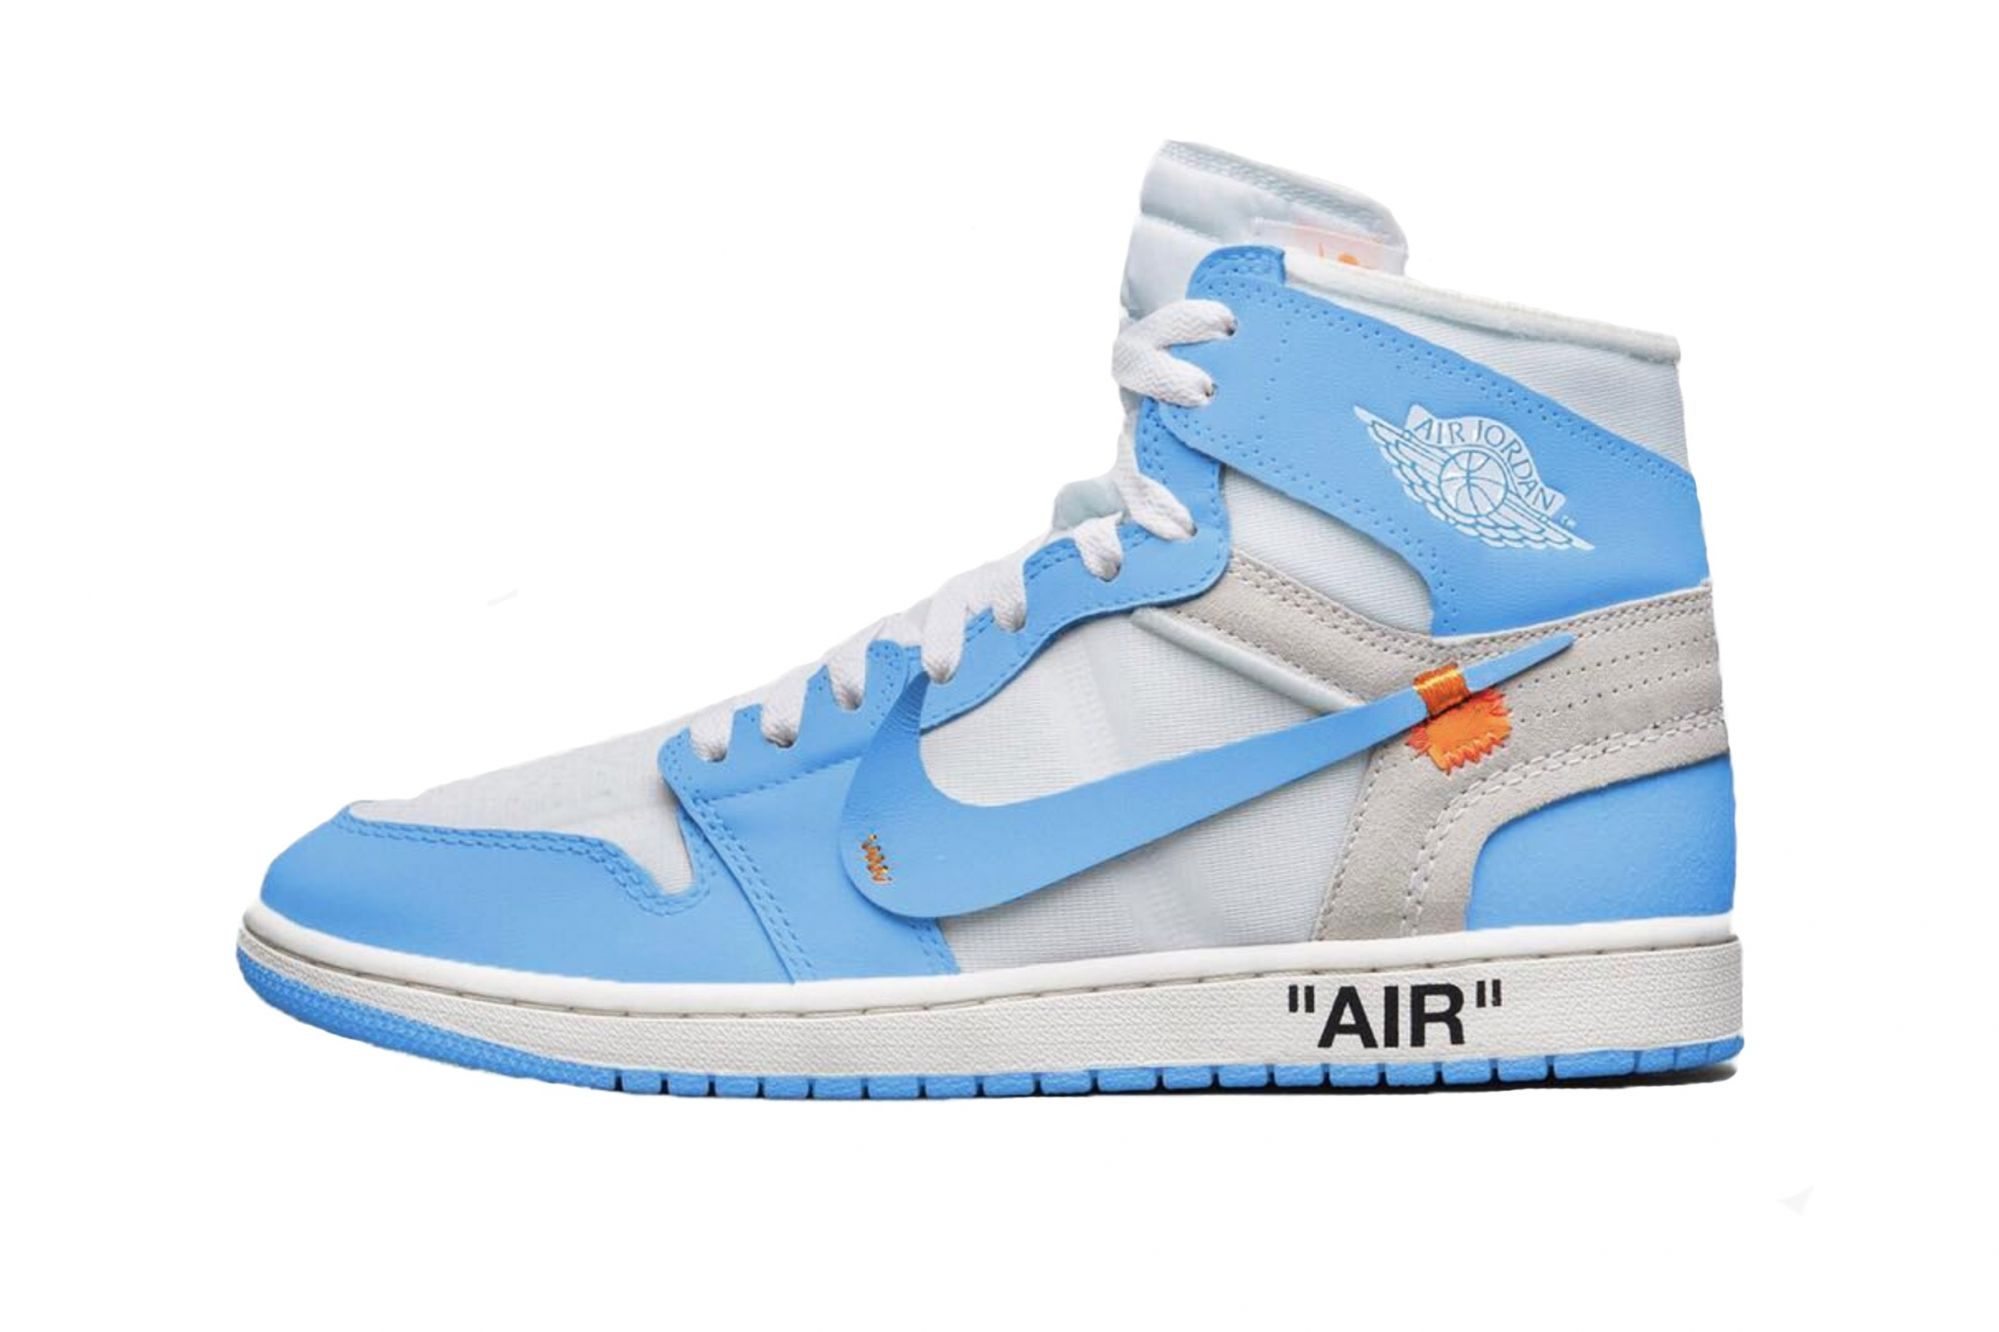 Unveiled a new Air Jordan 1 x Off White